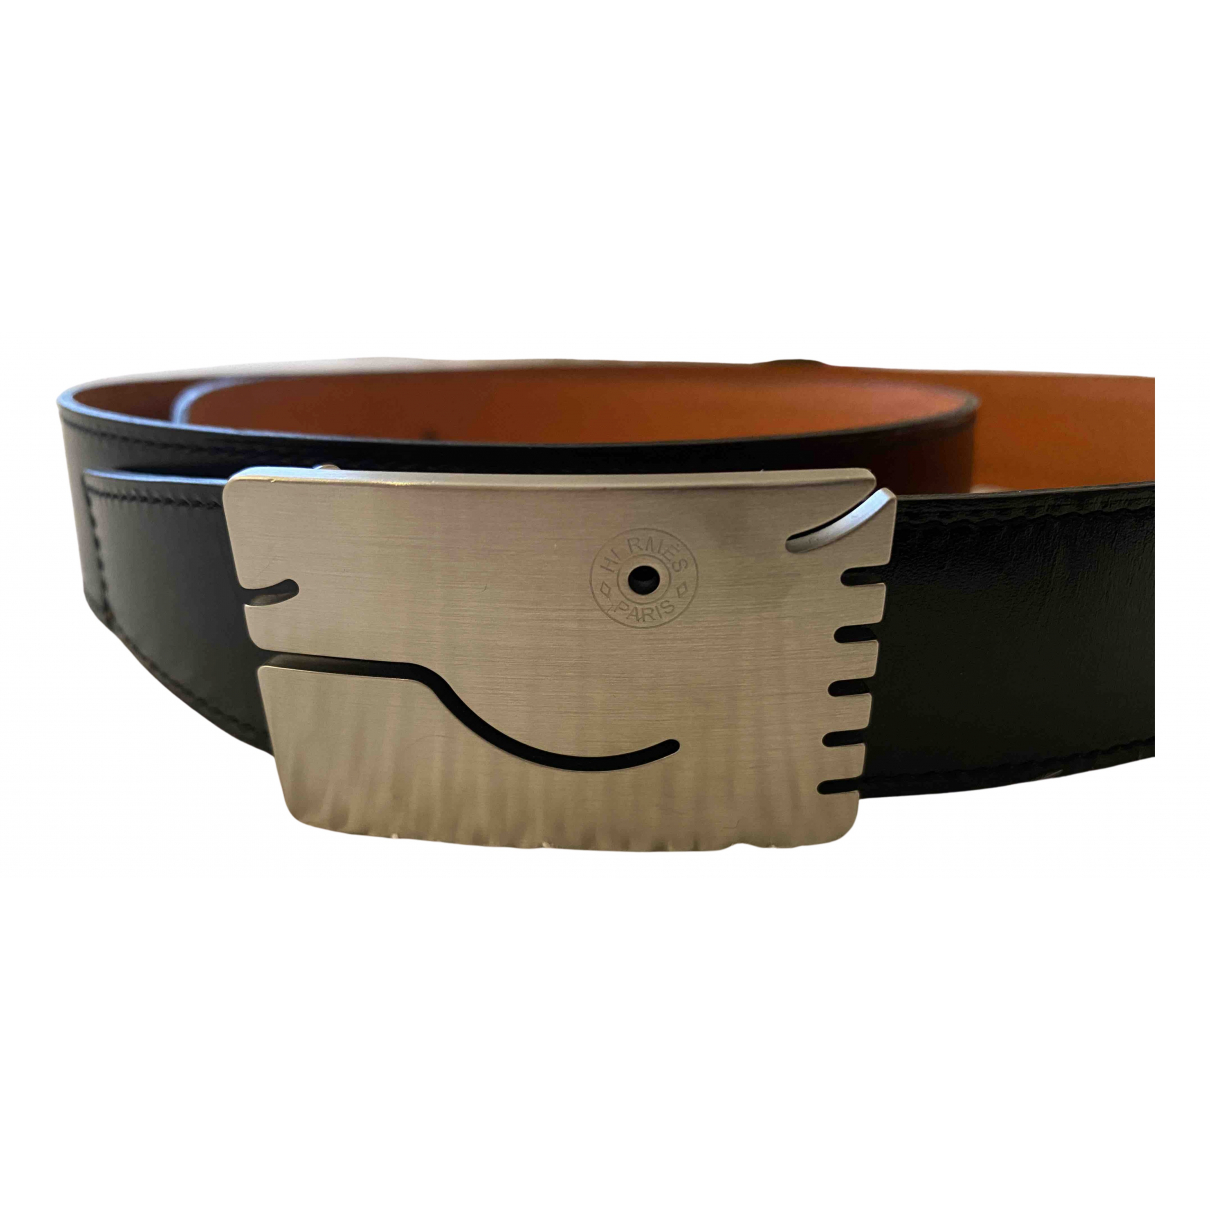 Hermès N Silver Metal belt for Men 95 cm